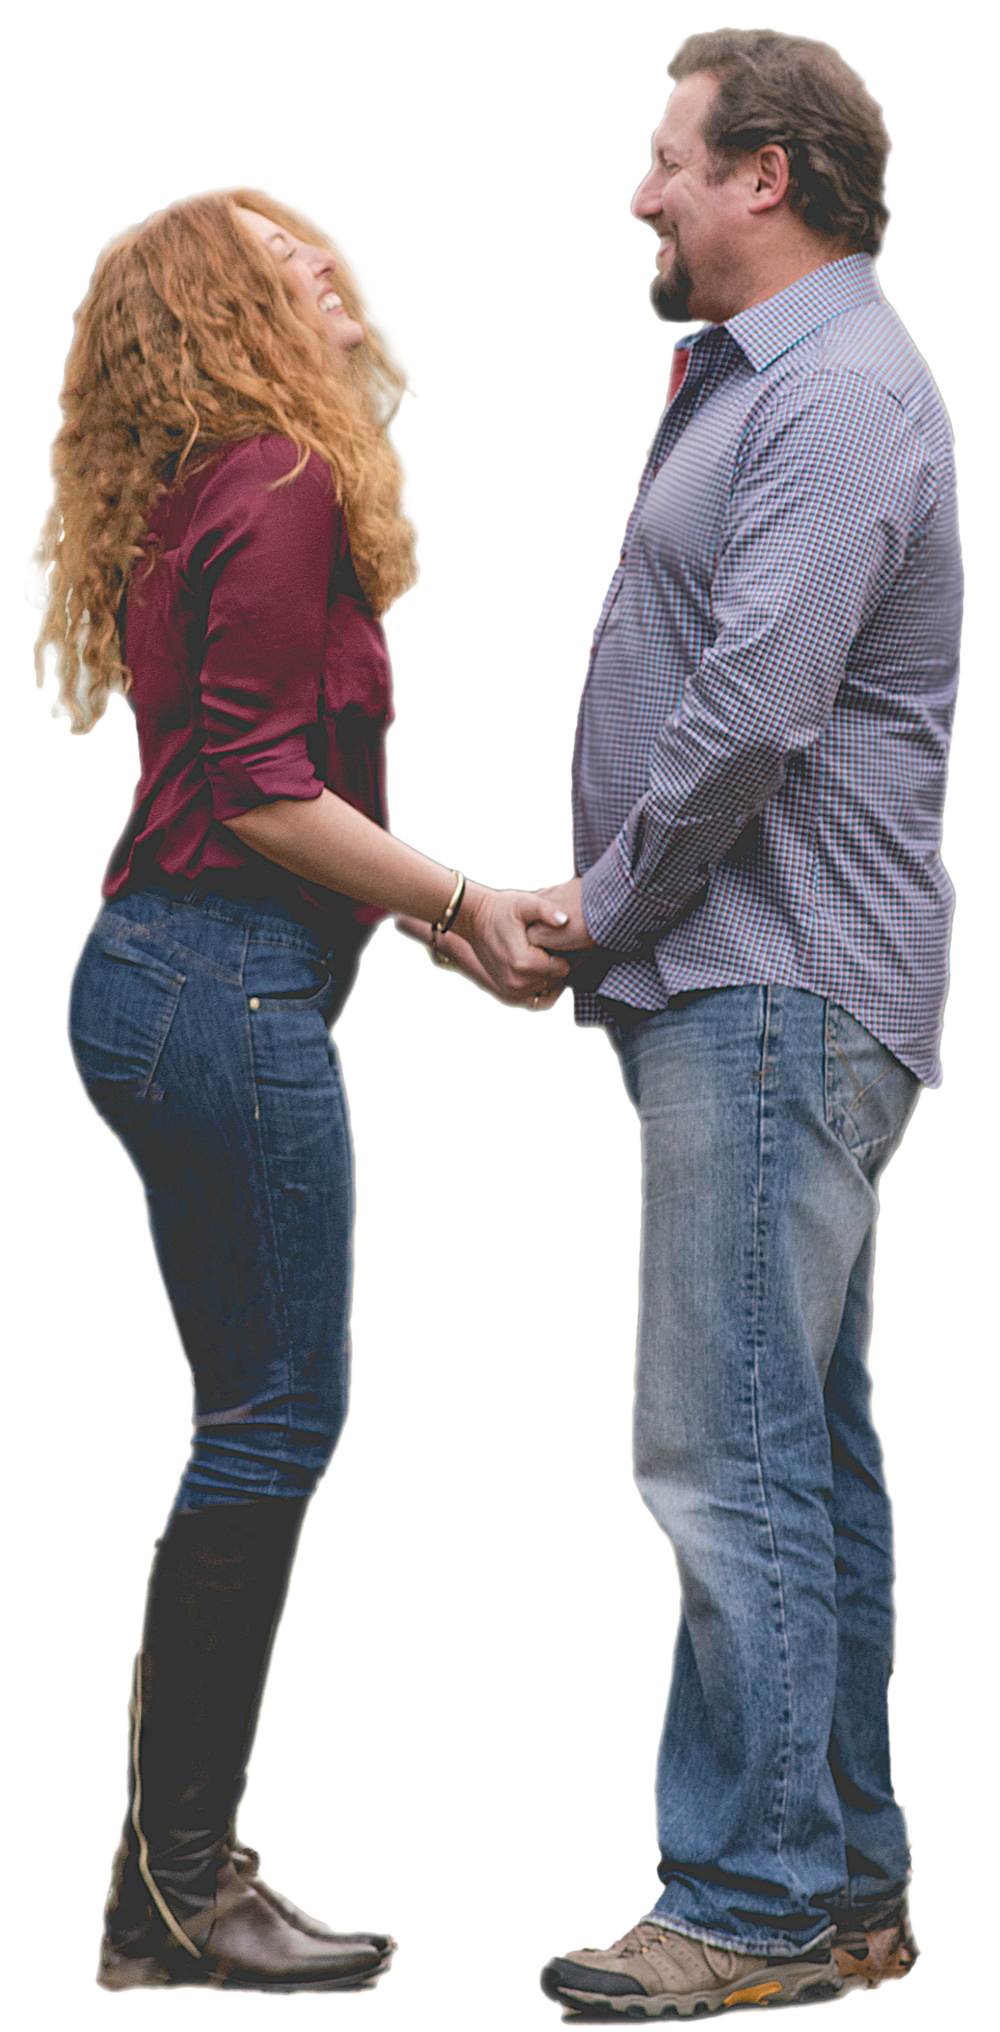 Kendra Seoane Chris DeCicco Evolve Dating Gurus best matchmaker denver.png